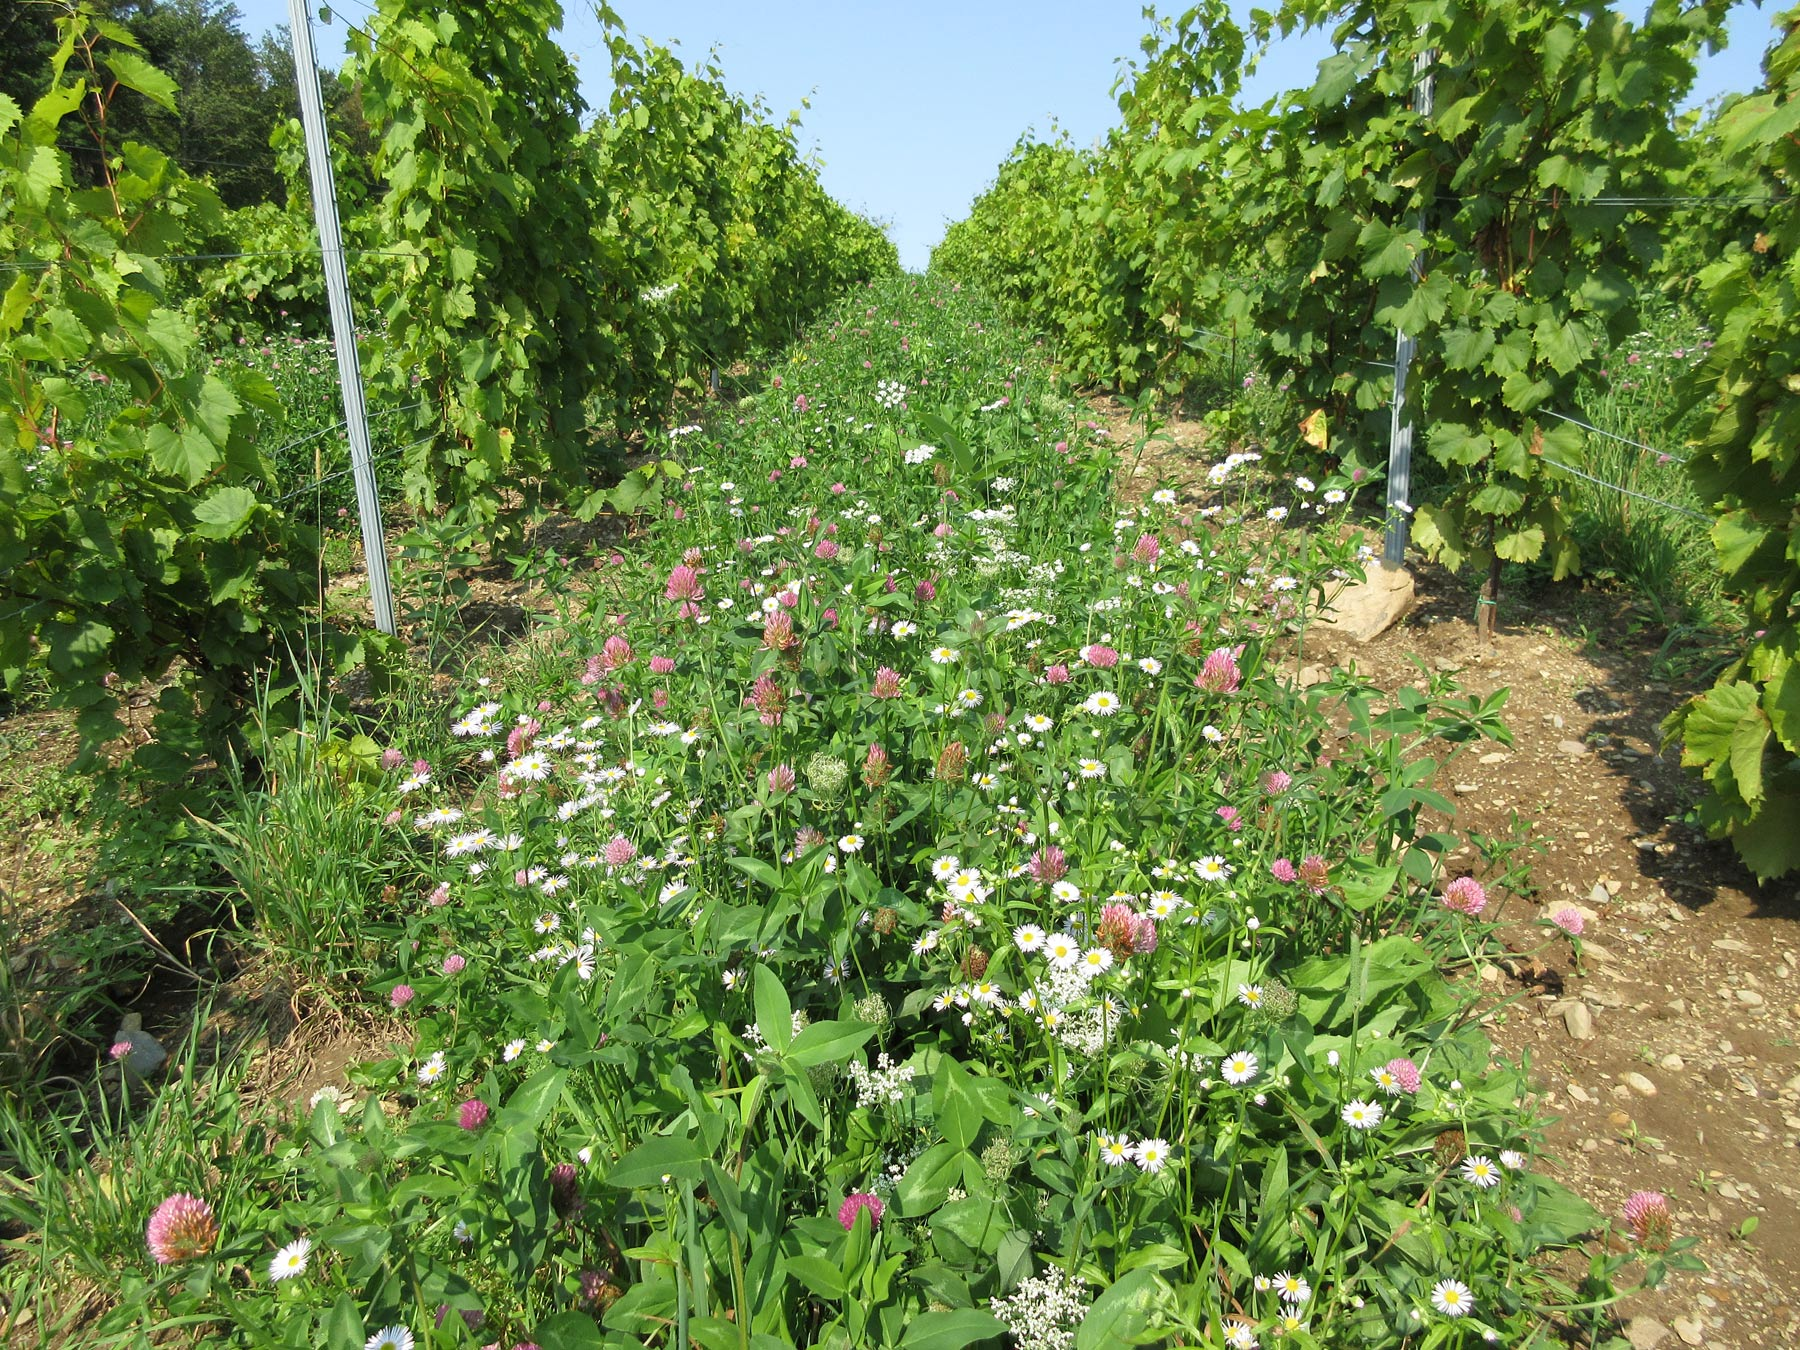 E71-Flower-cover-middle-row-in-Quebec-vineyards-(Lasnier)